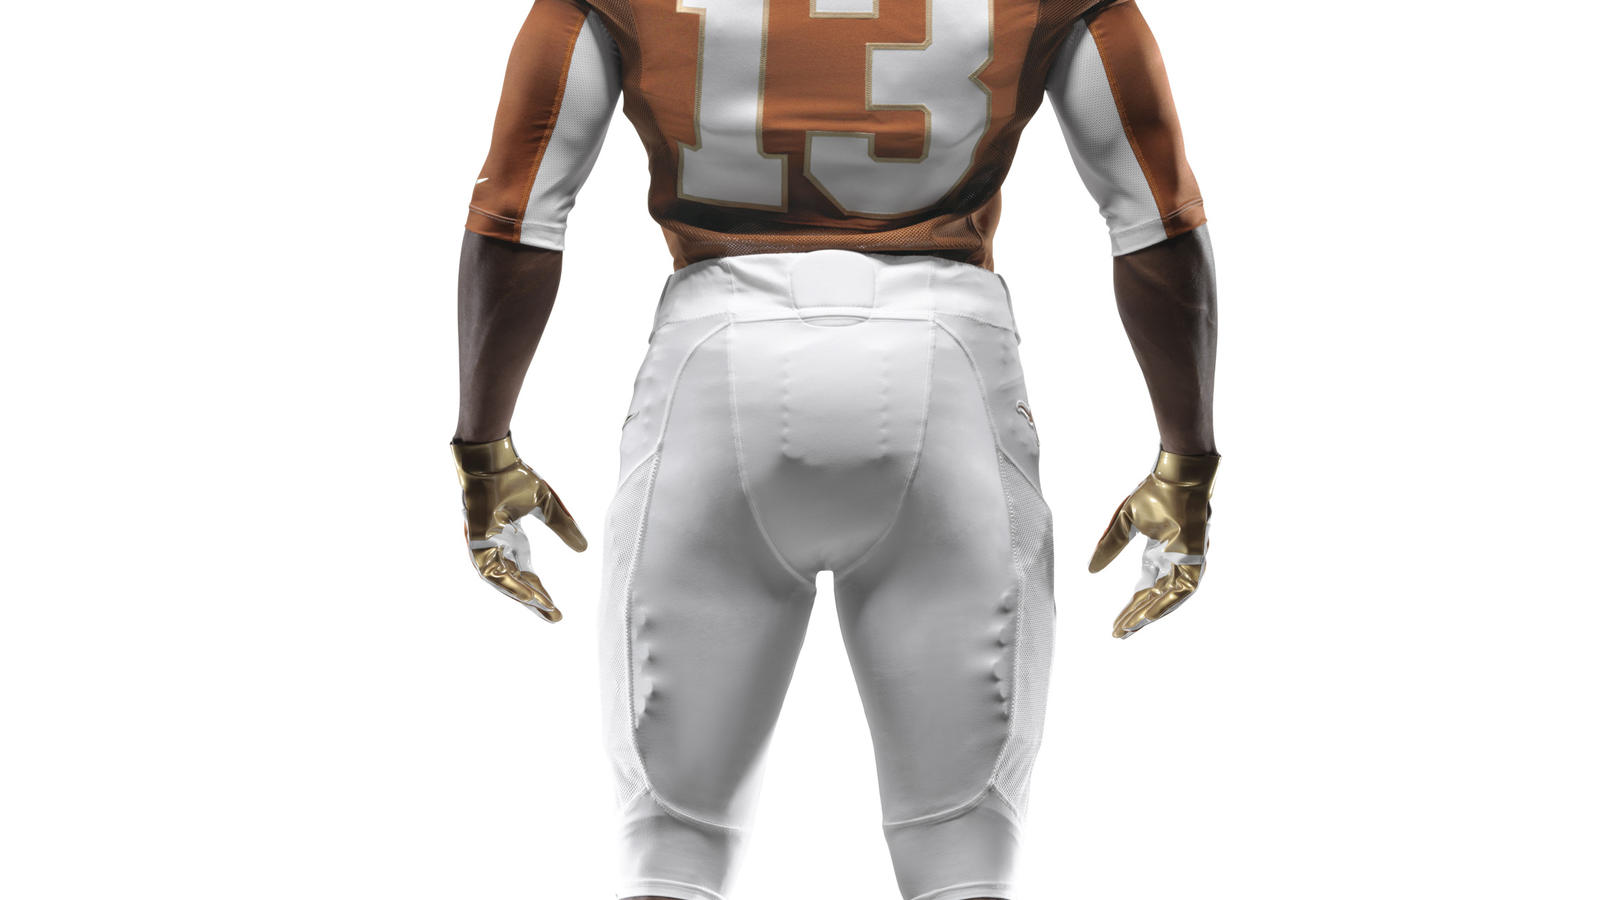 Ncaa Fb13 Uniforms Texas Full Uniform Back Fill 0000